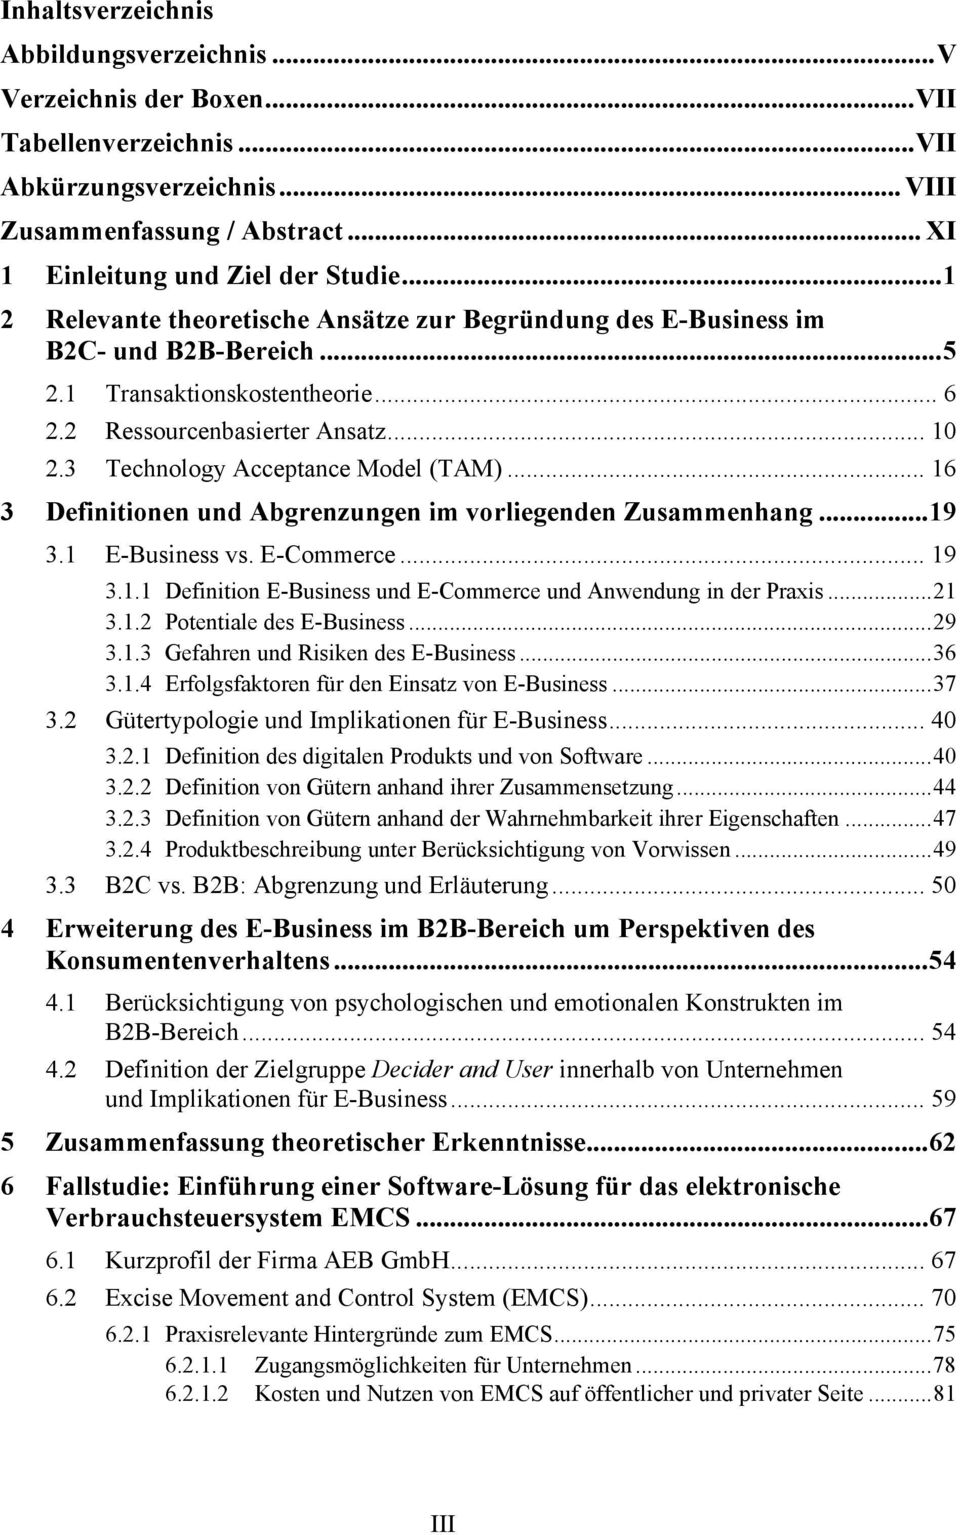 3 Technology Acceptance Model (TAM)... 16 3 Definitionen und Abgrenzungen im vorliegenden Zusammenhang...19 3.1 E-Business vs. E-Commerce... 19 3.1.1 Definition E-Business und E-Commerce und Anwendung in der Praxis.